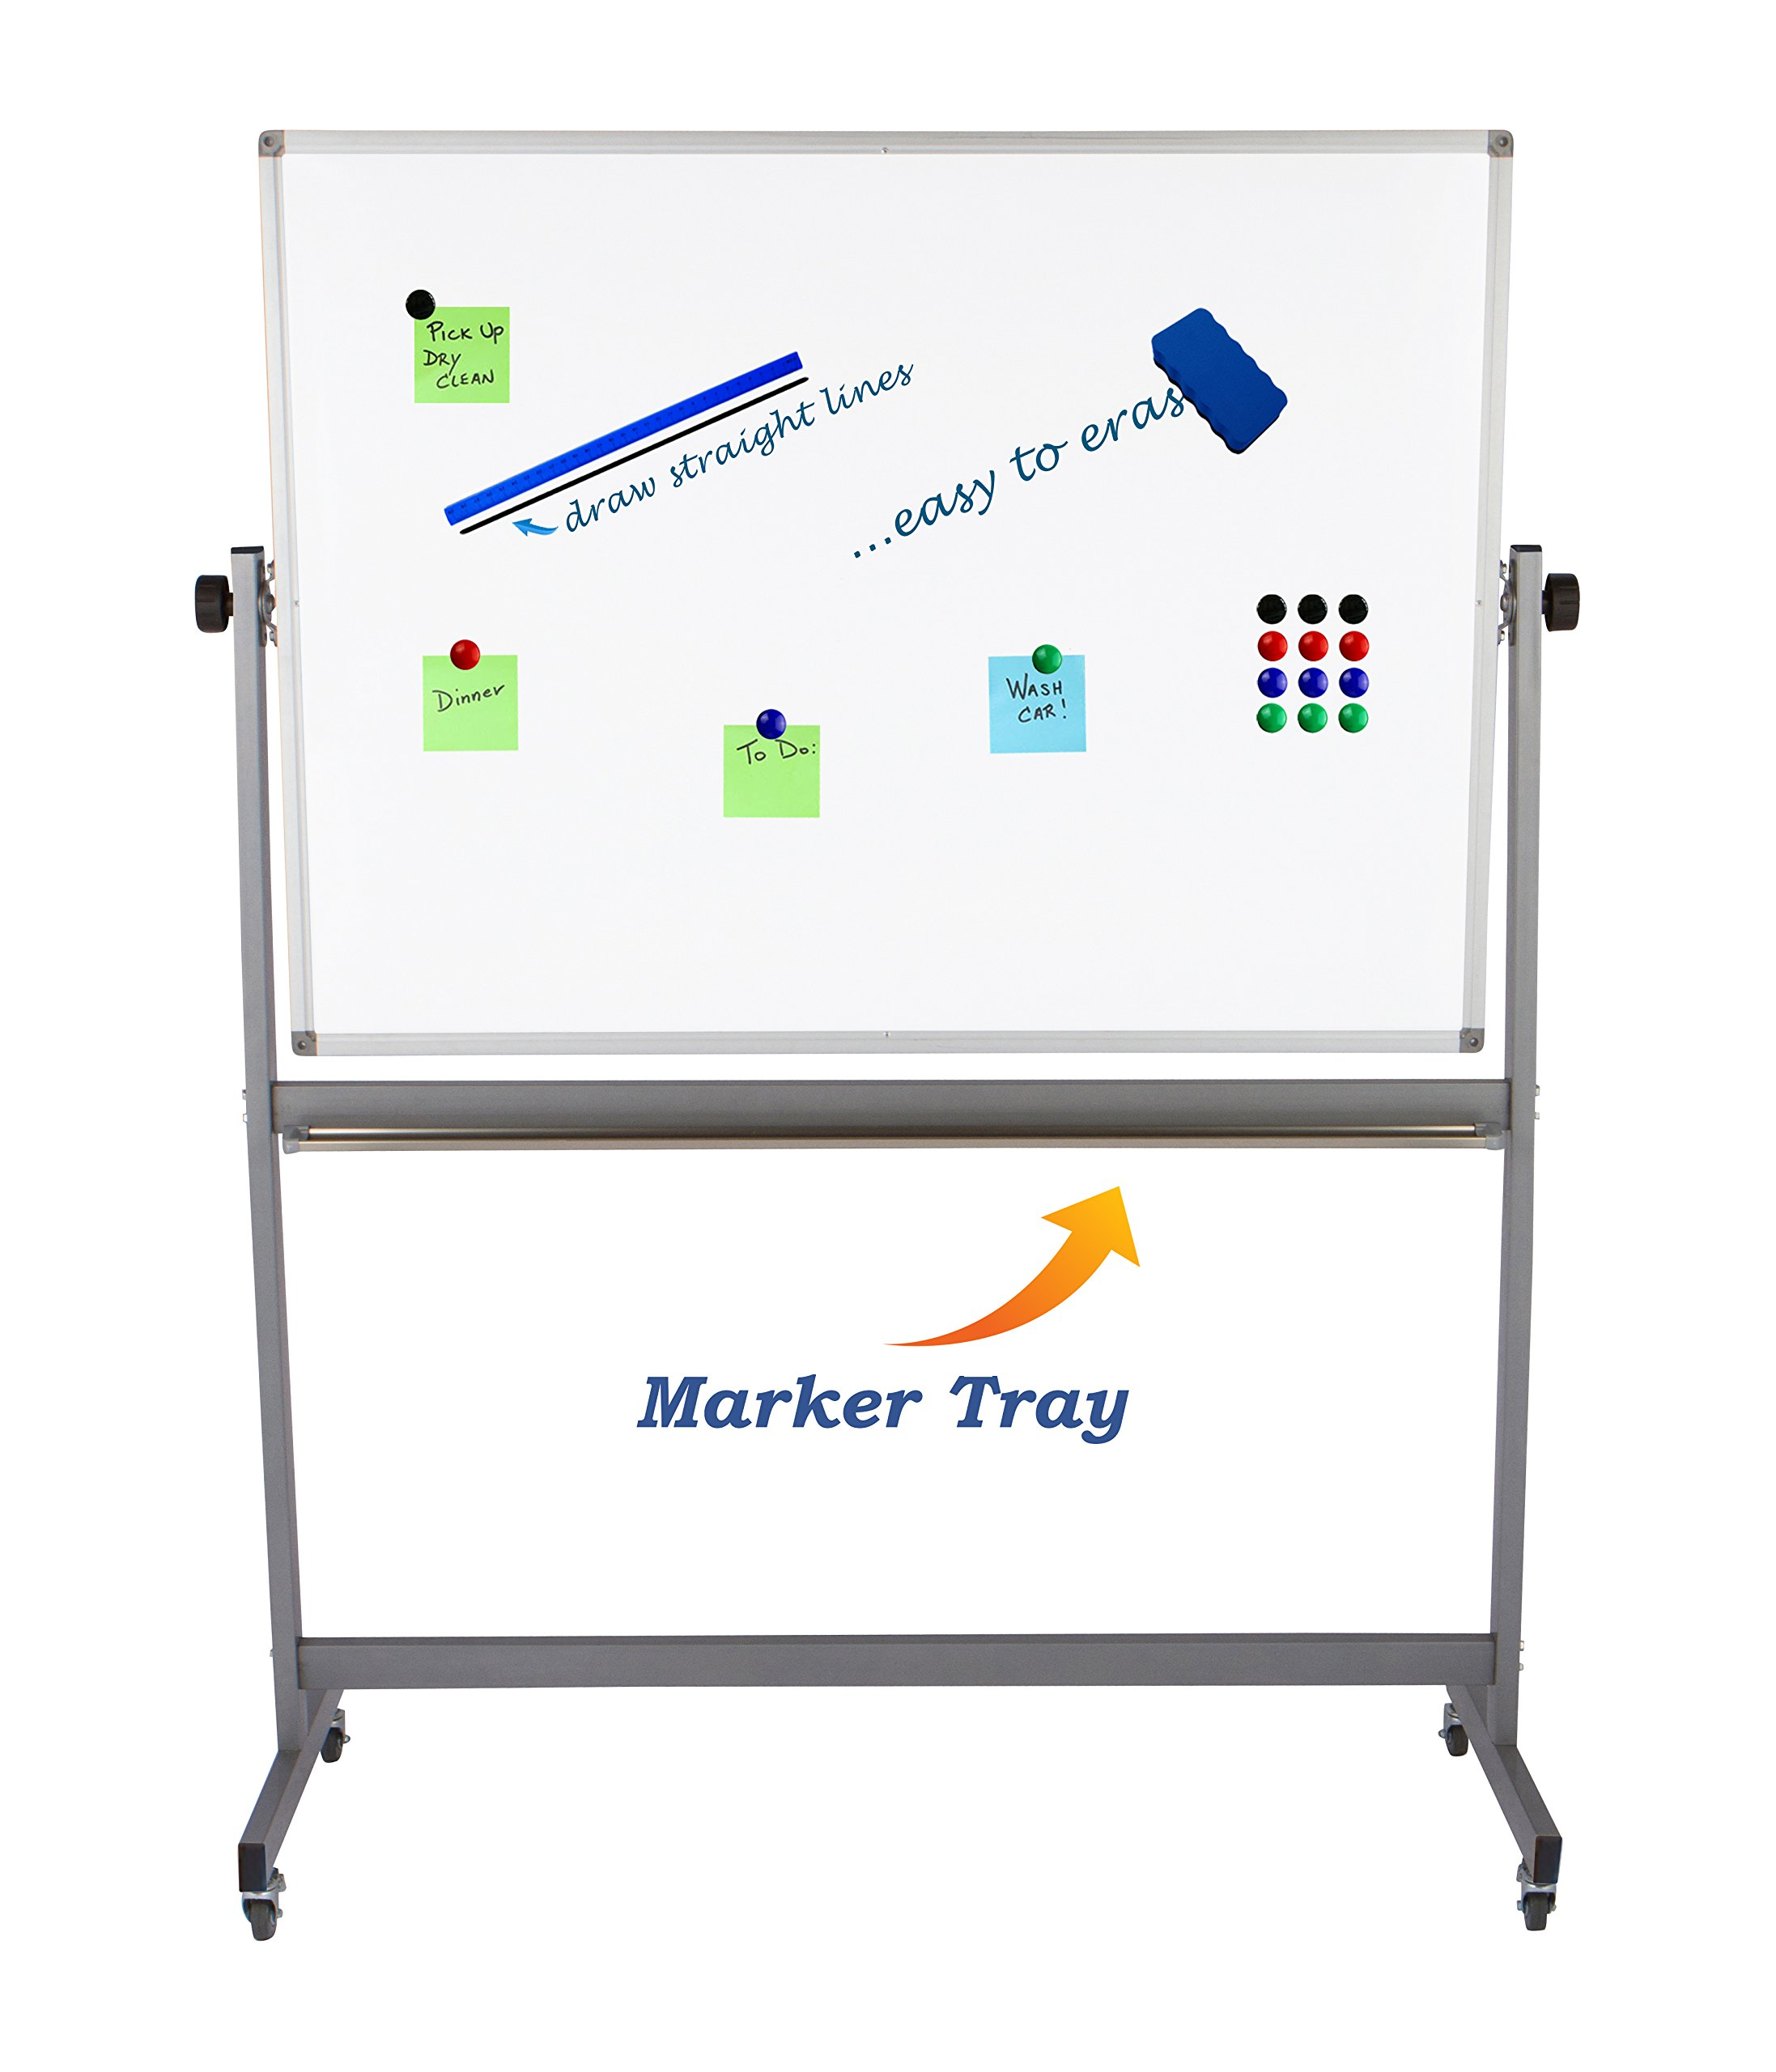 "Magnetic Mobile Whiteboard Large On Stand Double Sided Flip Over Dry Erase Reversible Portable Home Office Classroom Board 36 x 48"" Inch with 4 Markers 12 Magnets Eraser and Ruler Easel Aluminum Frame by Dapper Display (Image #6)"